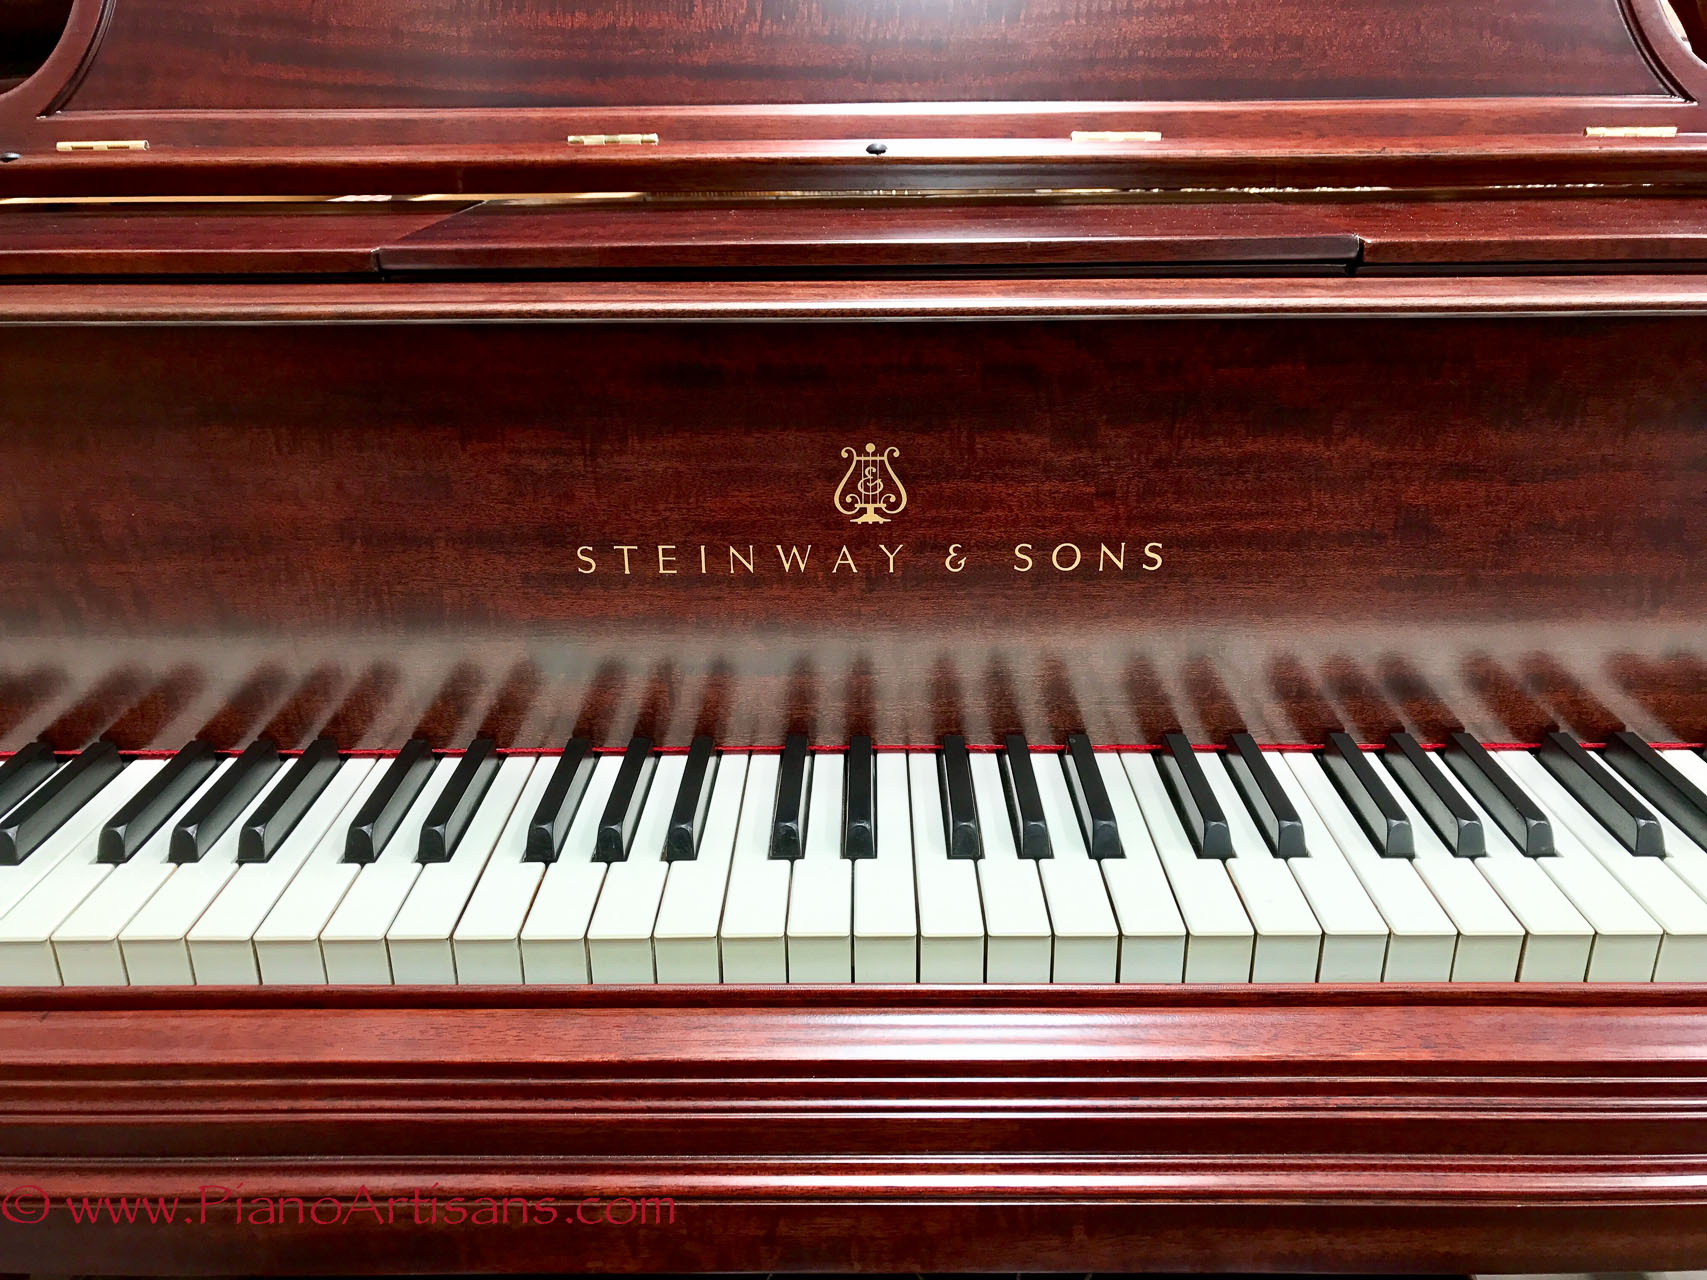 Restored Steinway Player Piano front view